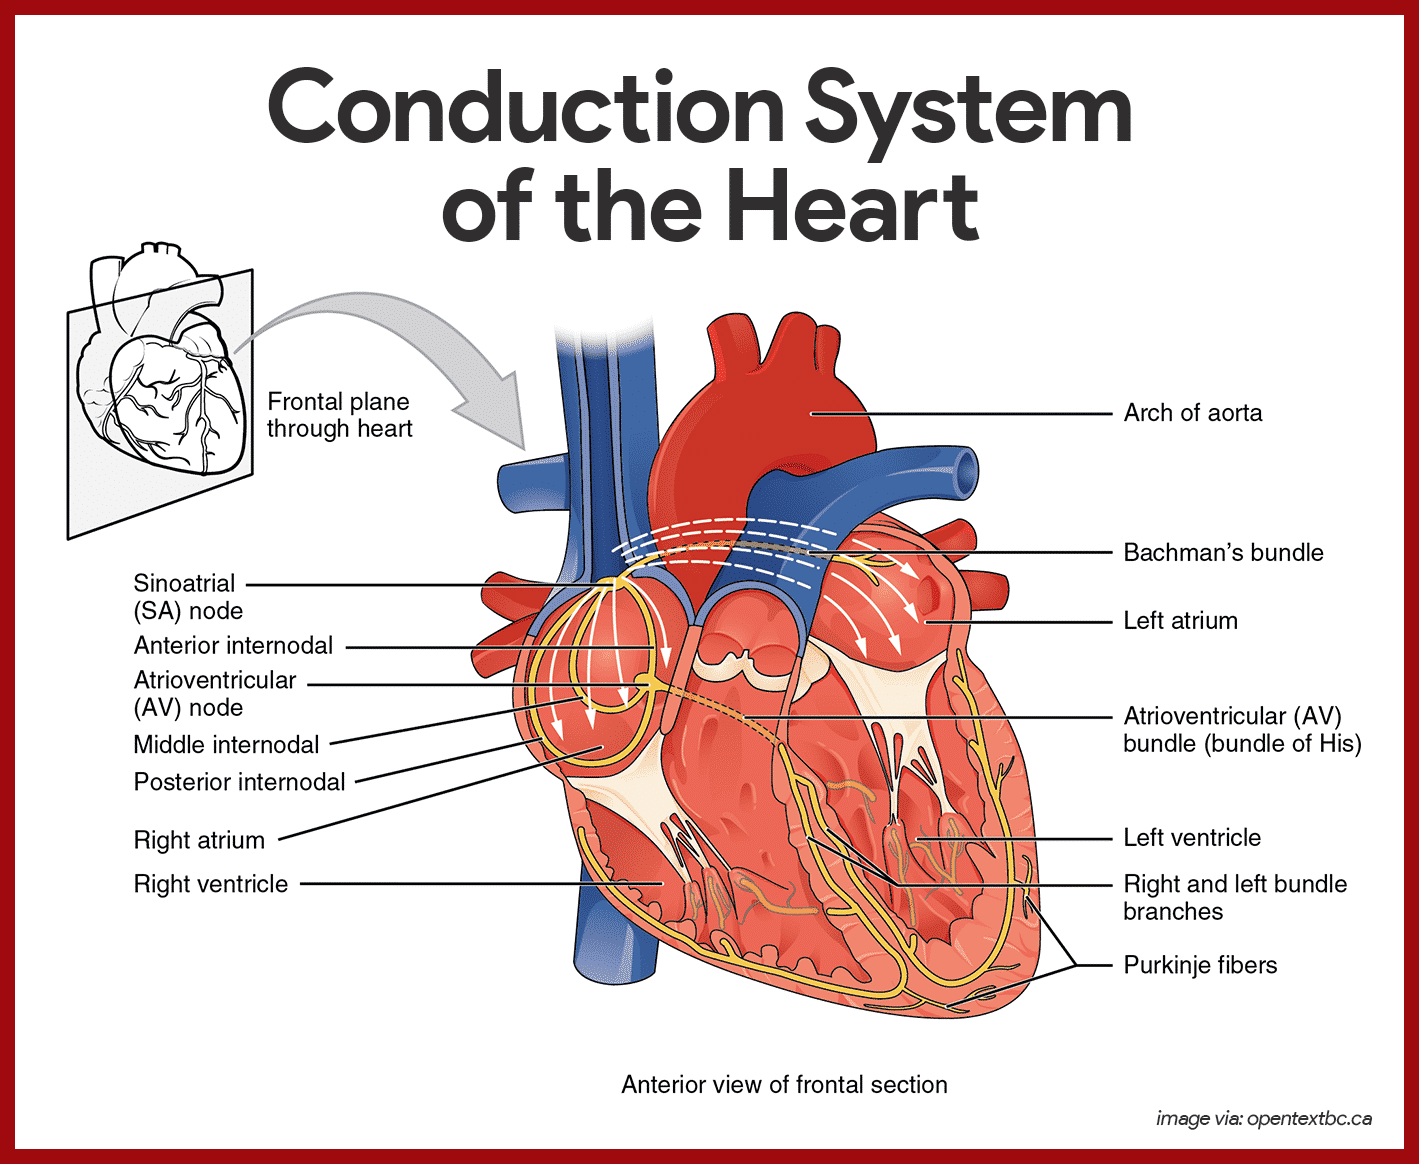 Heart Diagram Conduction System Anatomy And Physiology Wiring On Pinterest Cardiovascular Rh Com Black White